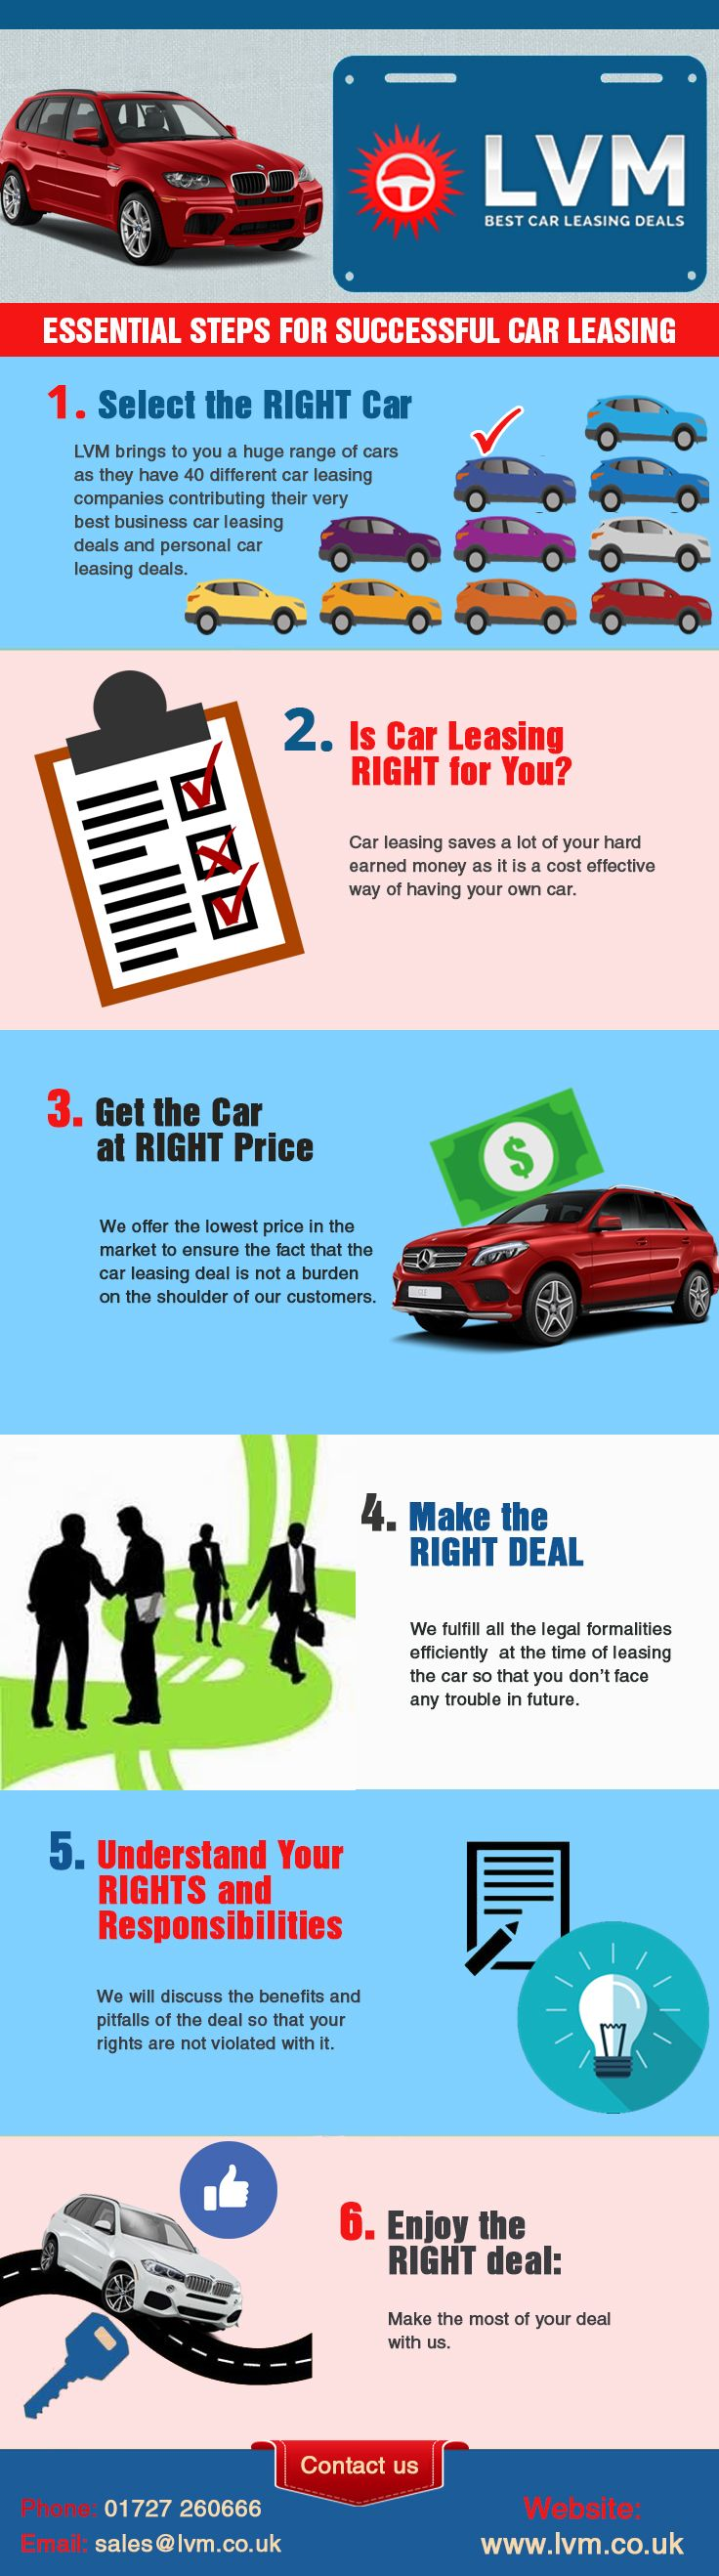 Taking a car on lease can be a great way of getting a new car or